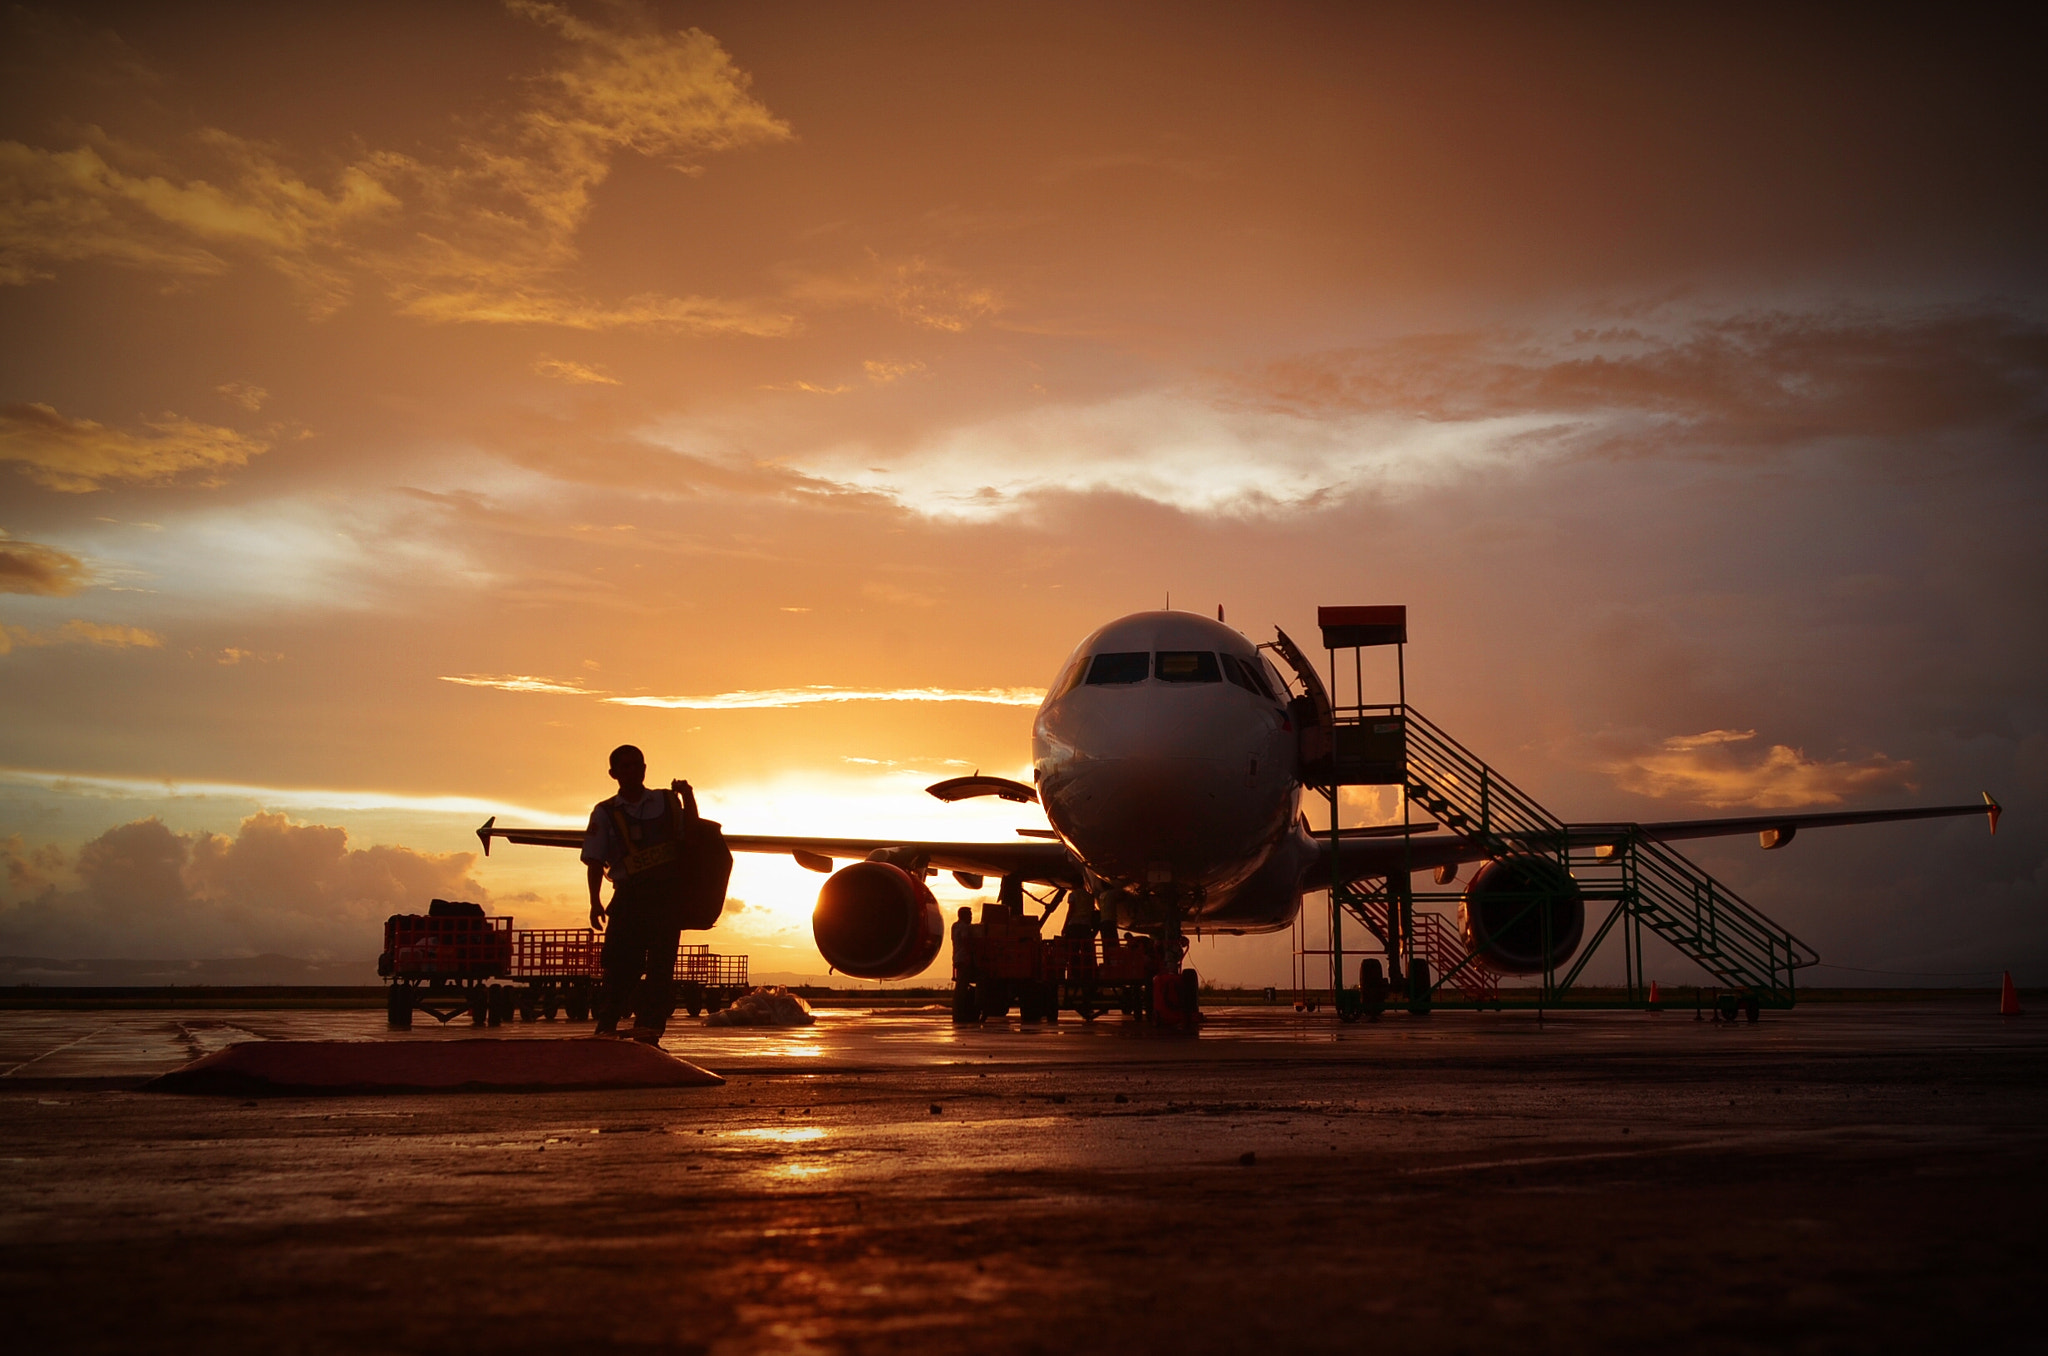 Photograph One day at the tarmac by Vey Telmo on 500px